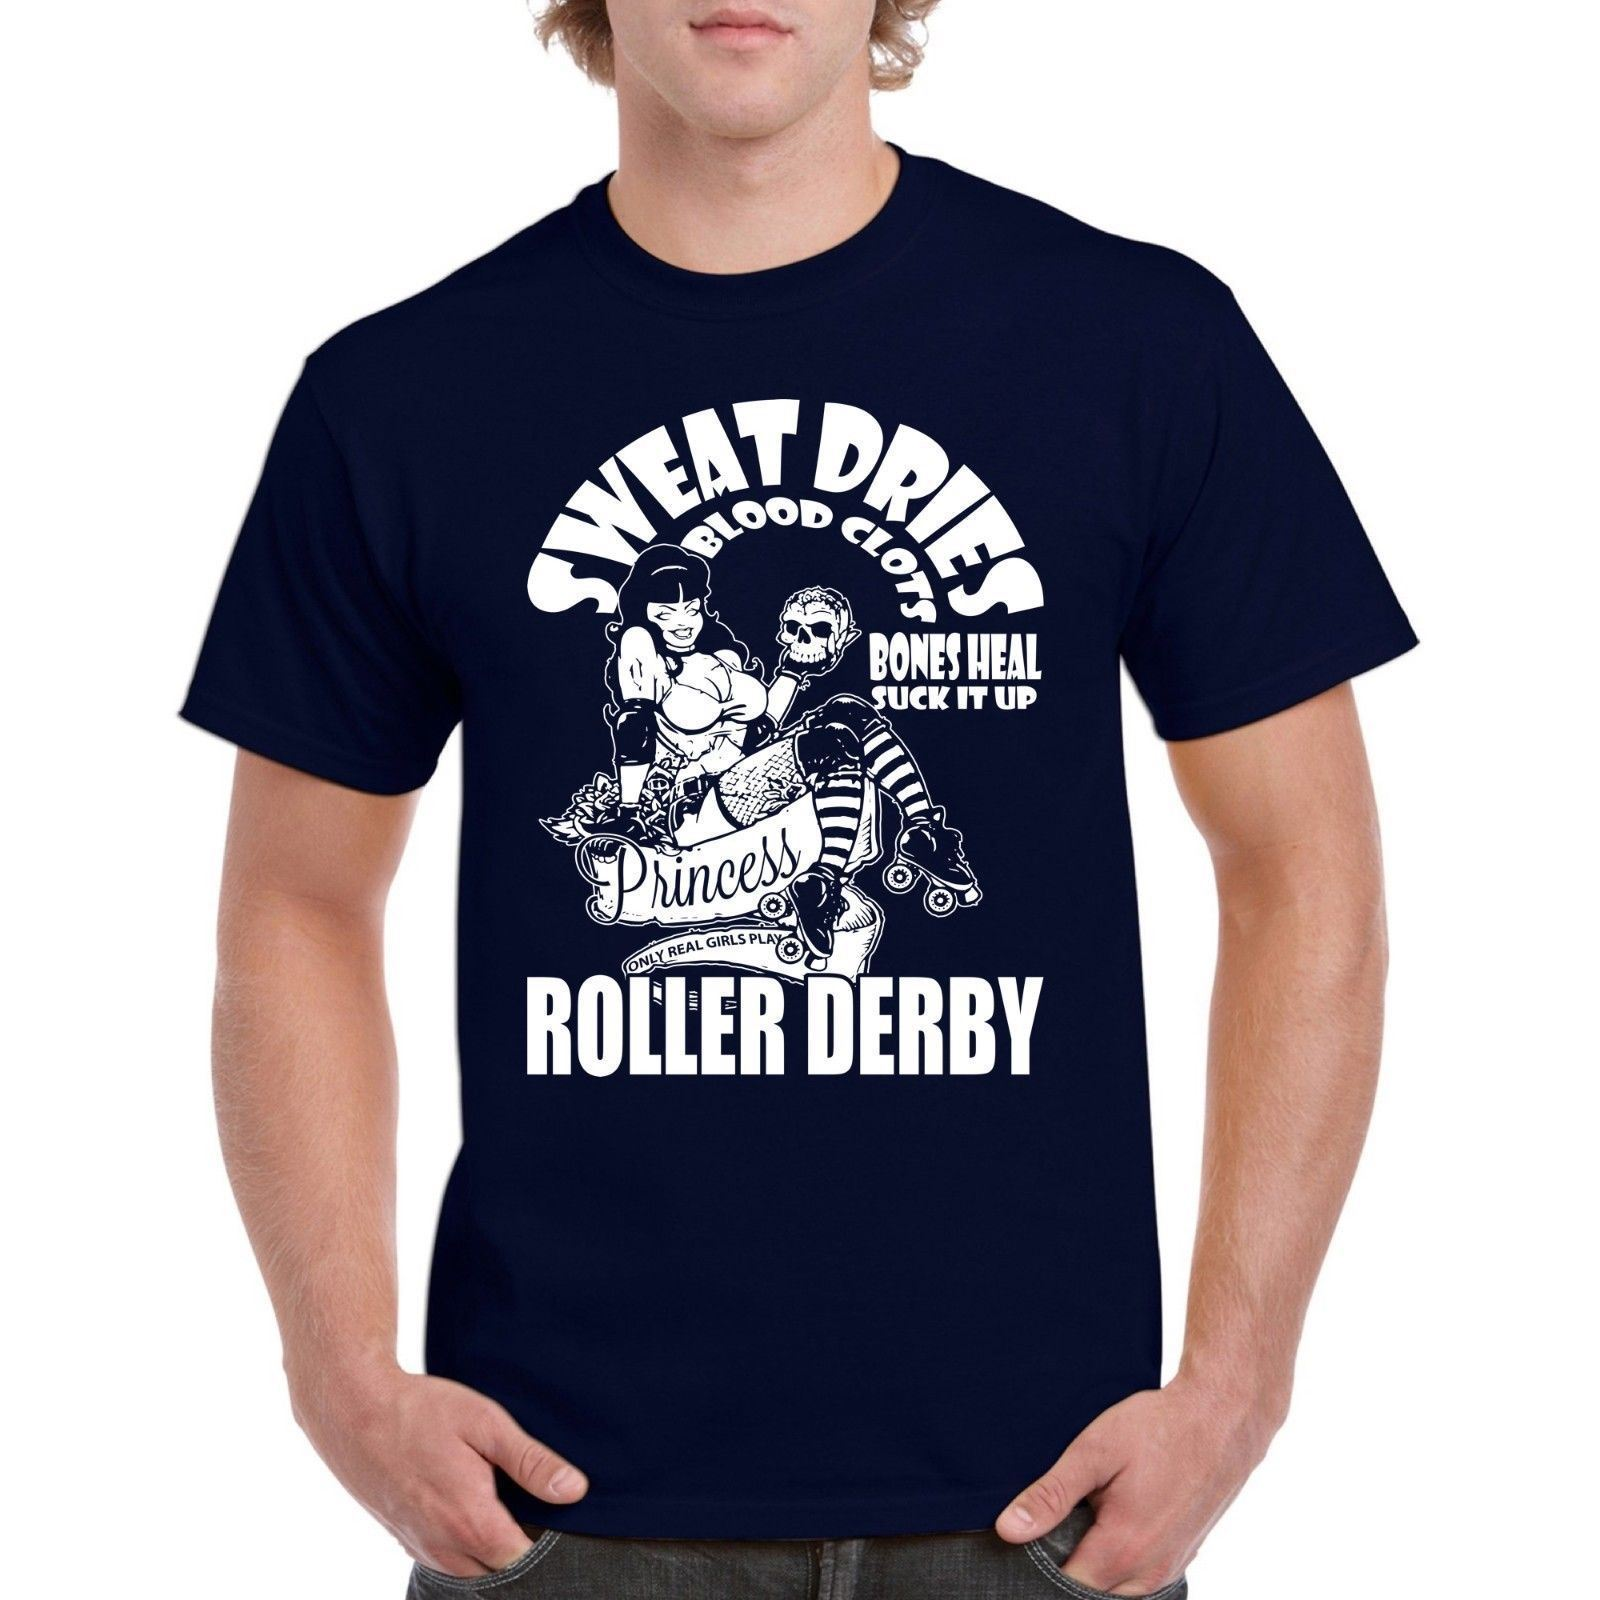 Roller Derby Princess Mens Tee Shirt Blood Clots100% Cotton T-shirt